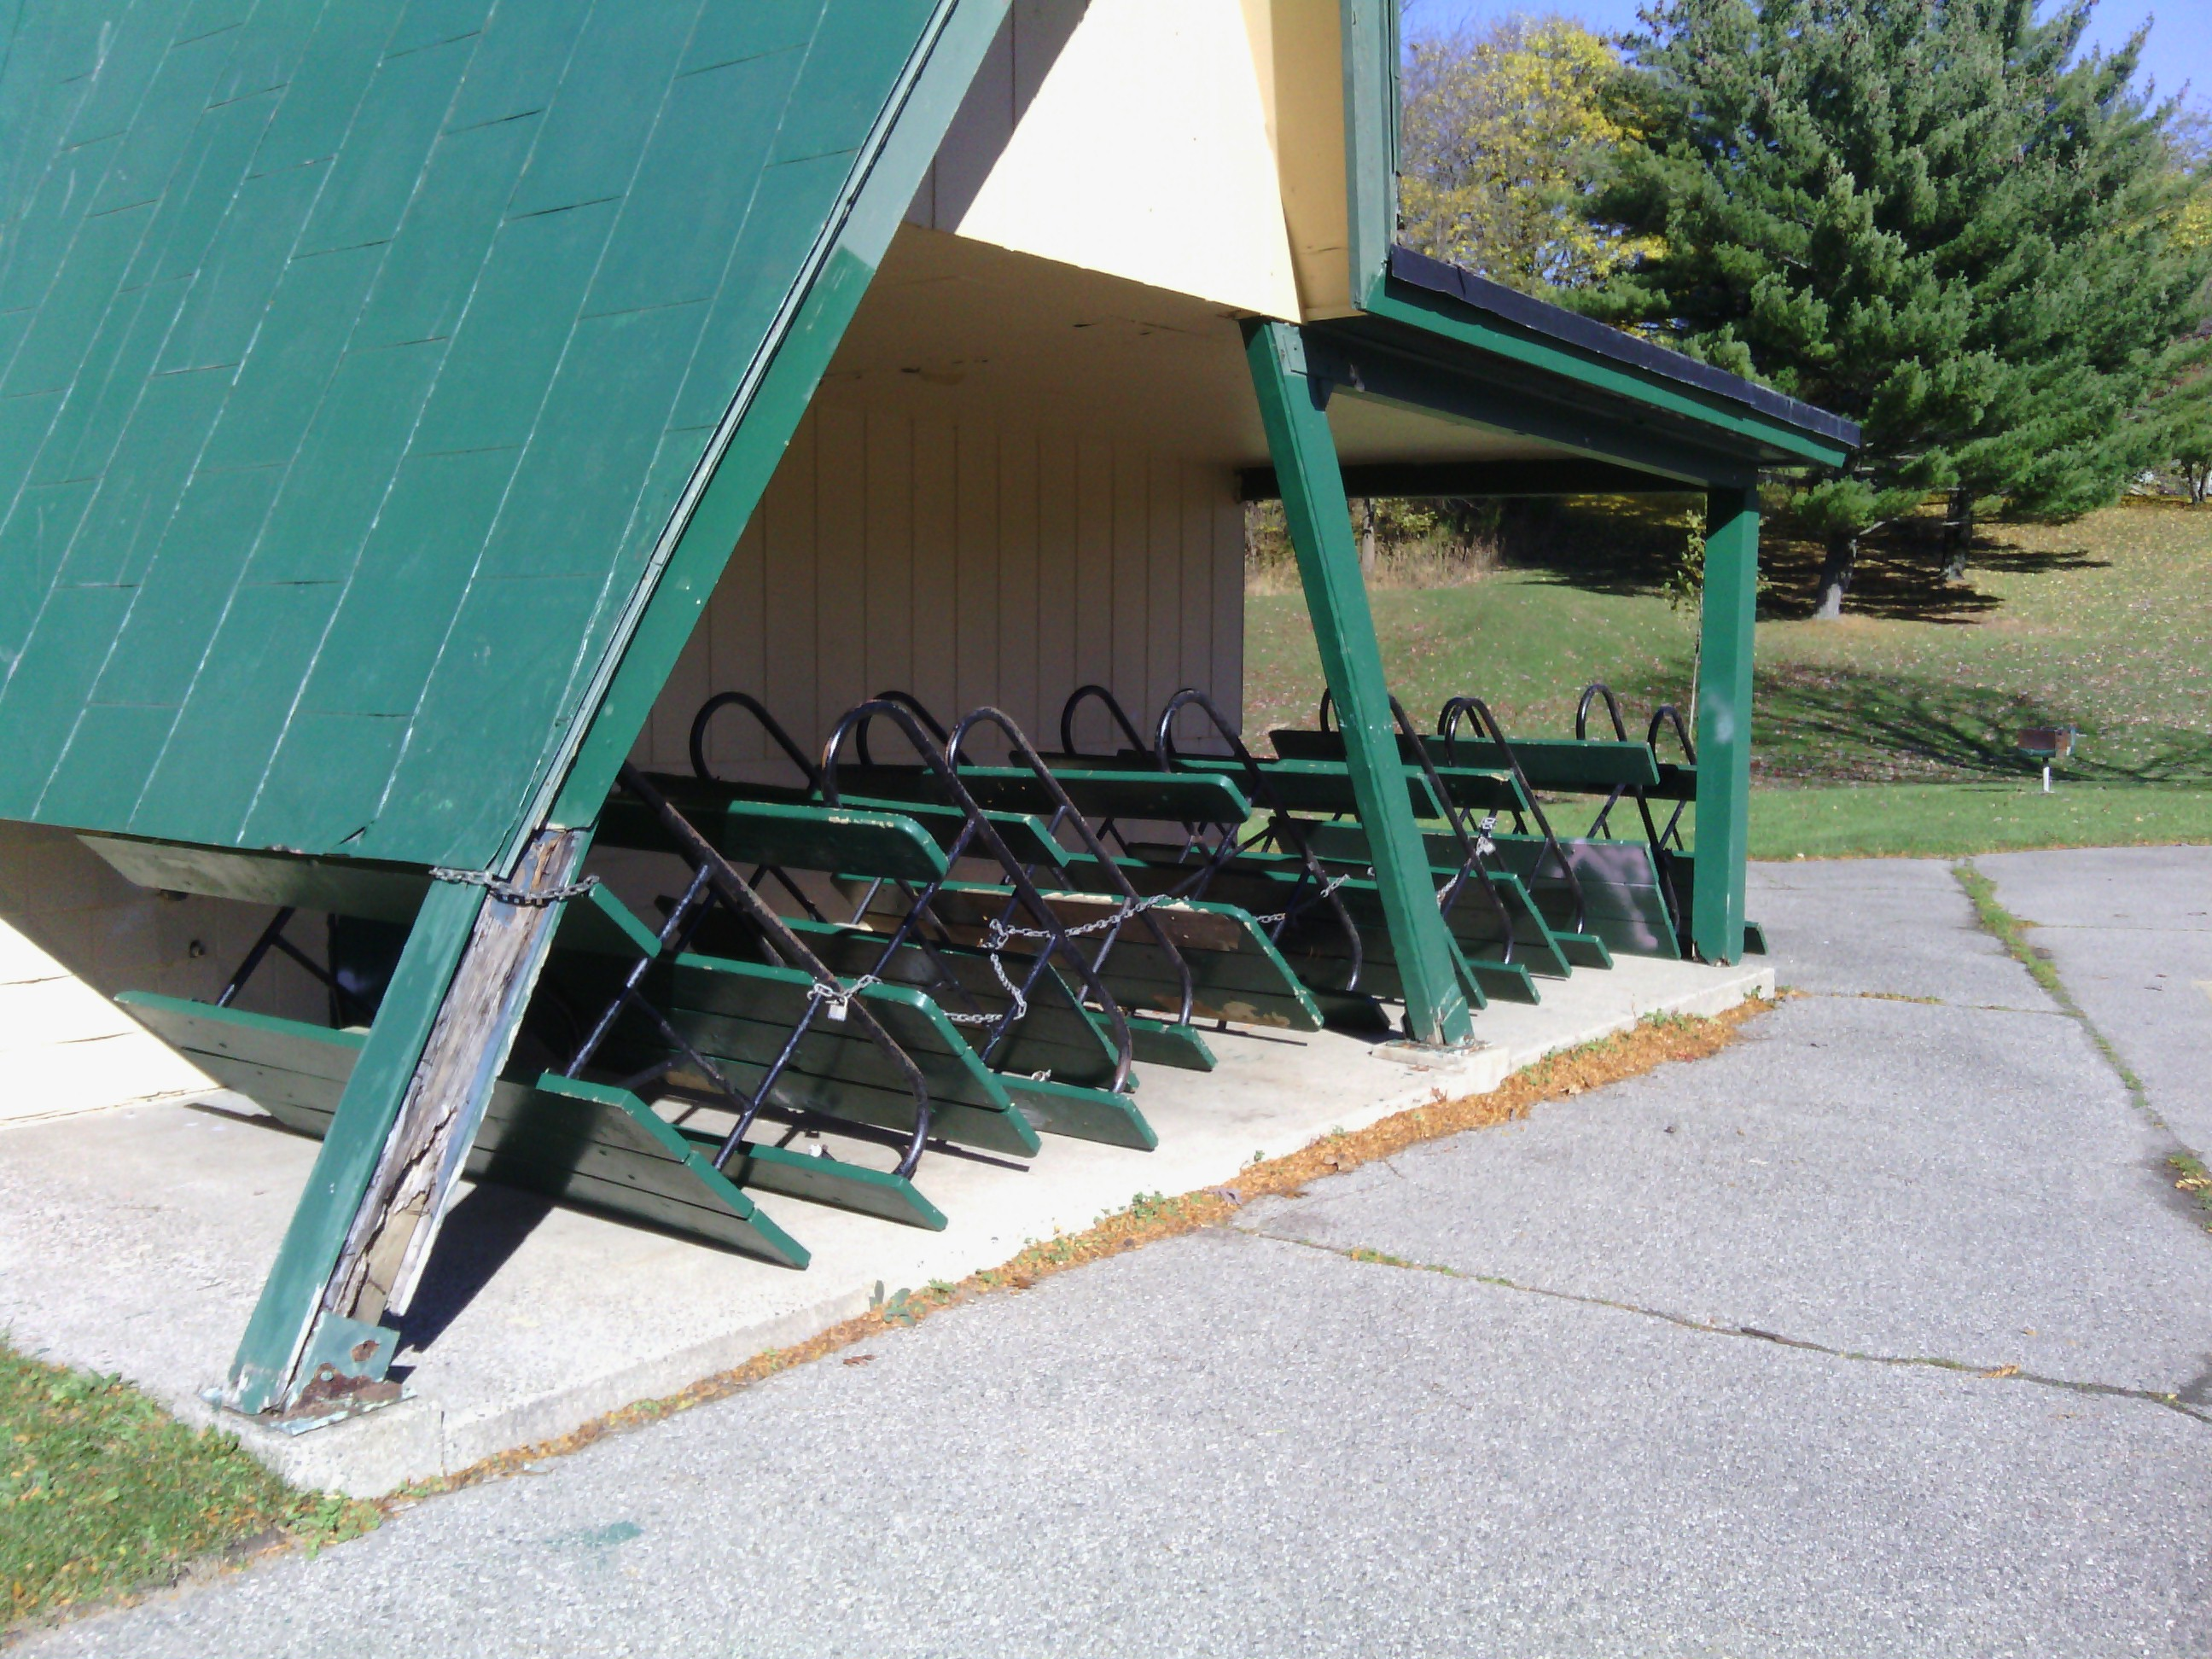 Overturned picnic tables in storage for the winter season